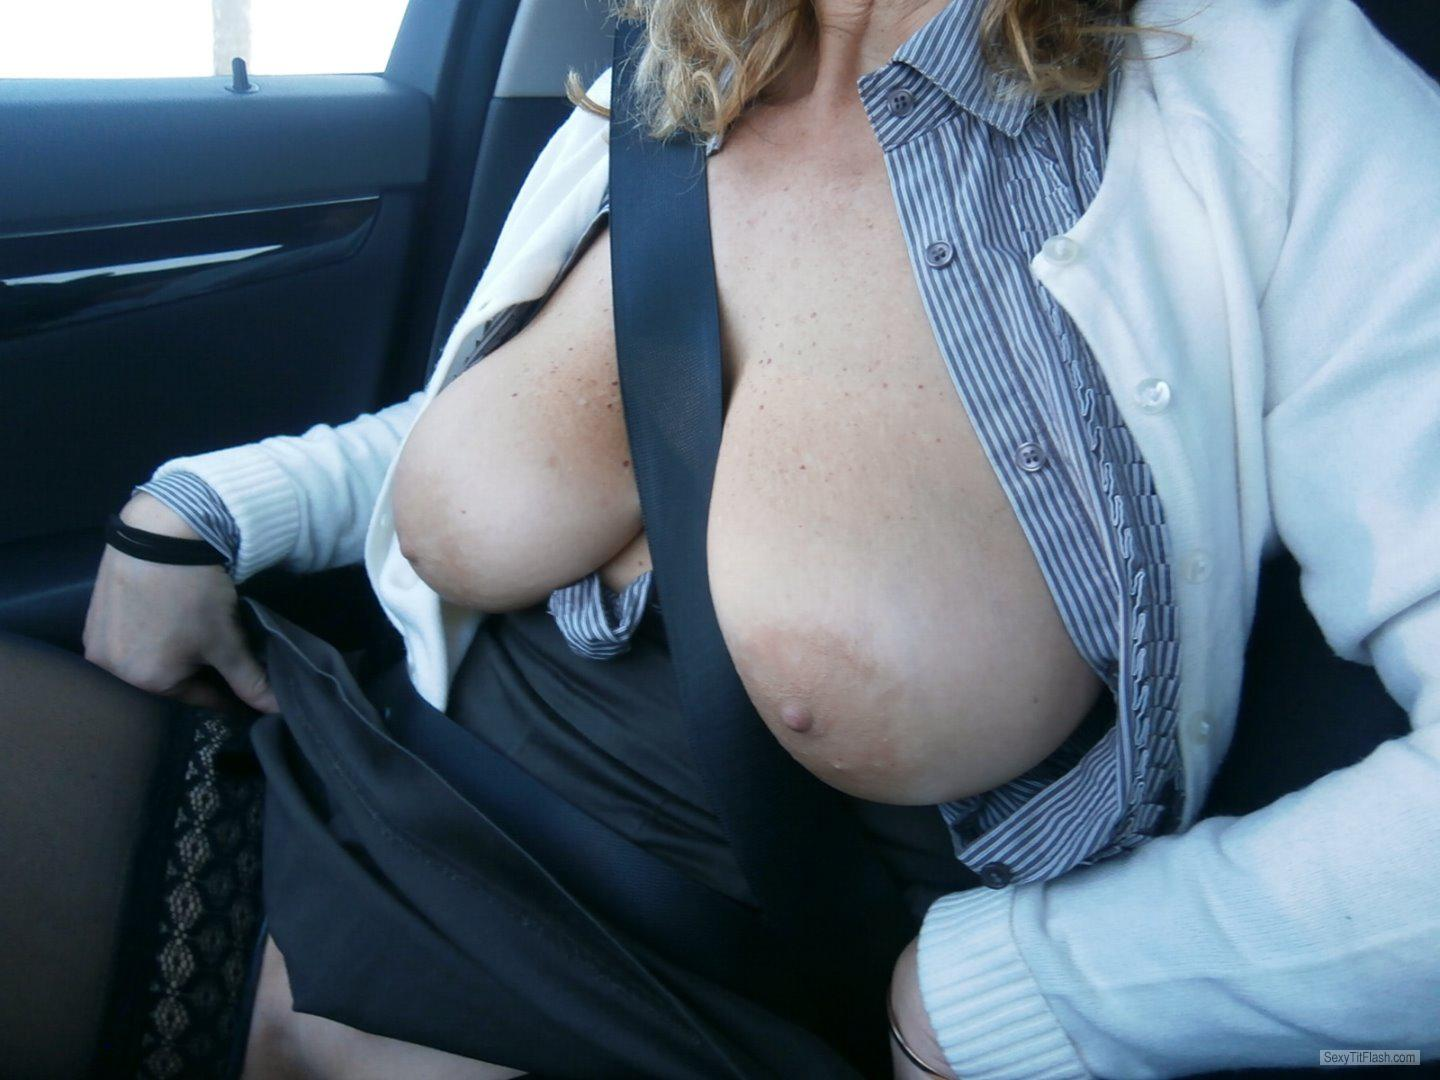 Tit Flash: Wife's Big Tits - Topless Patty from Italy